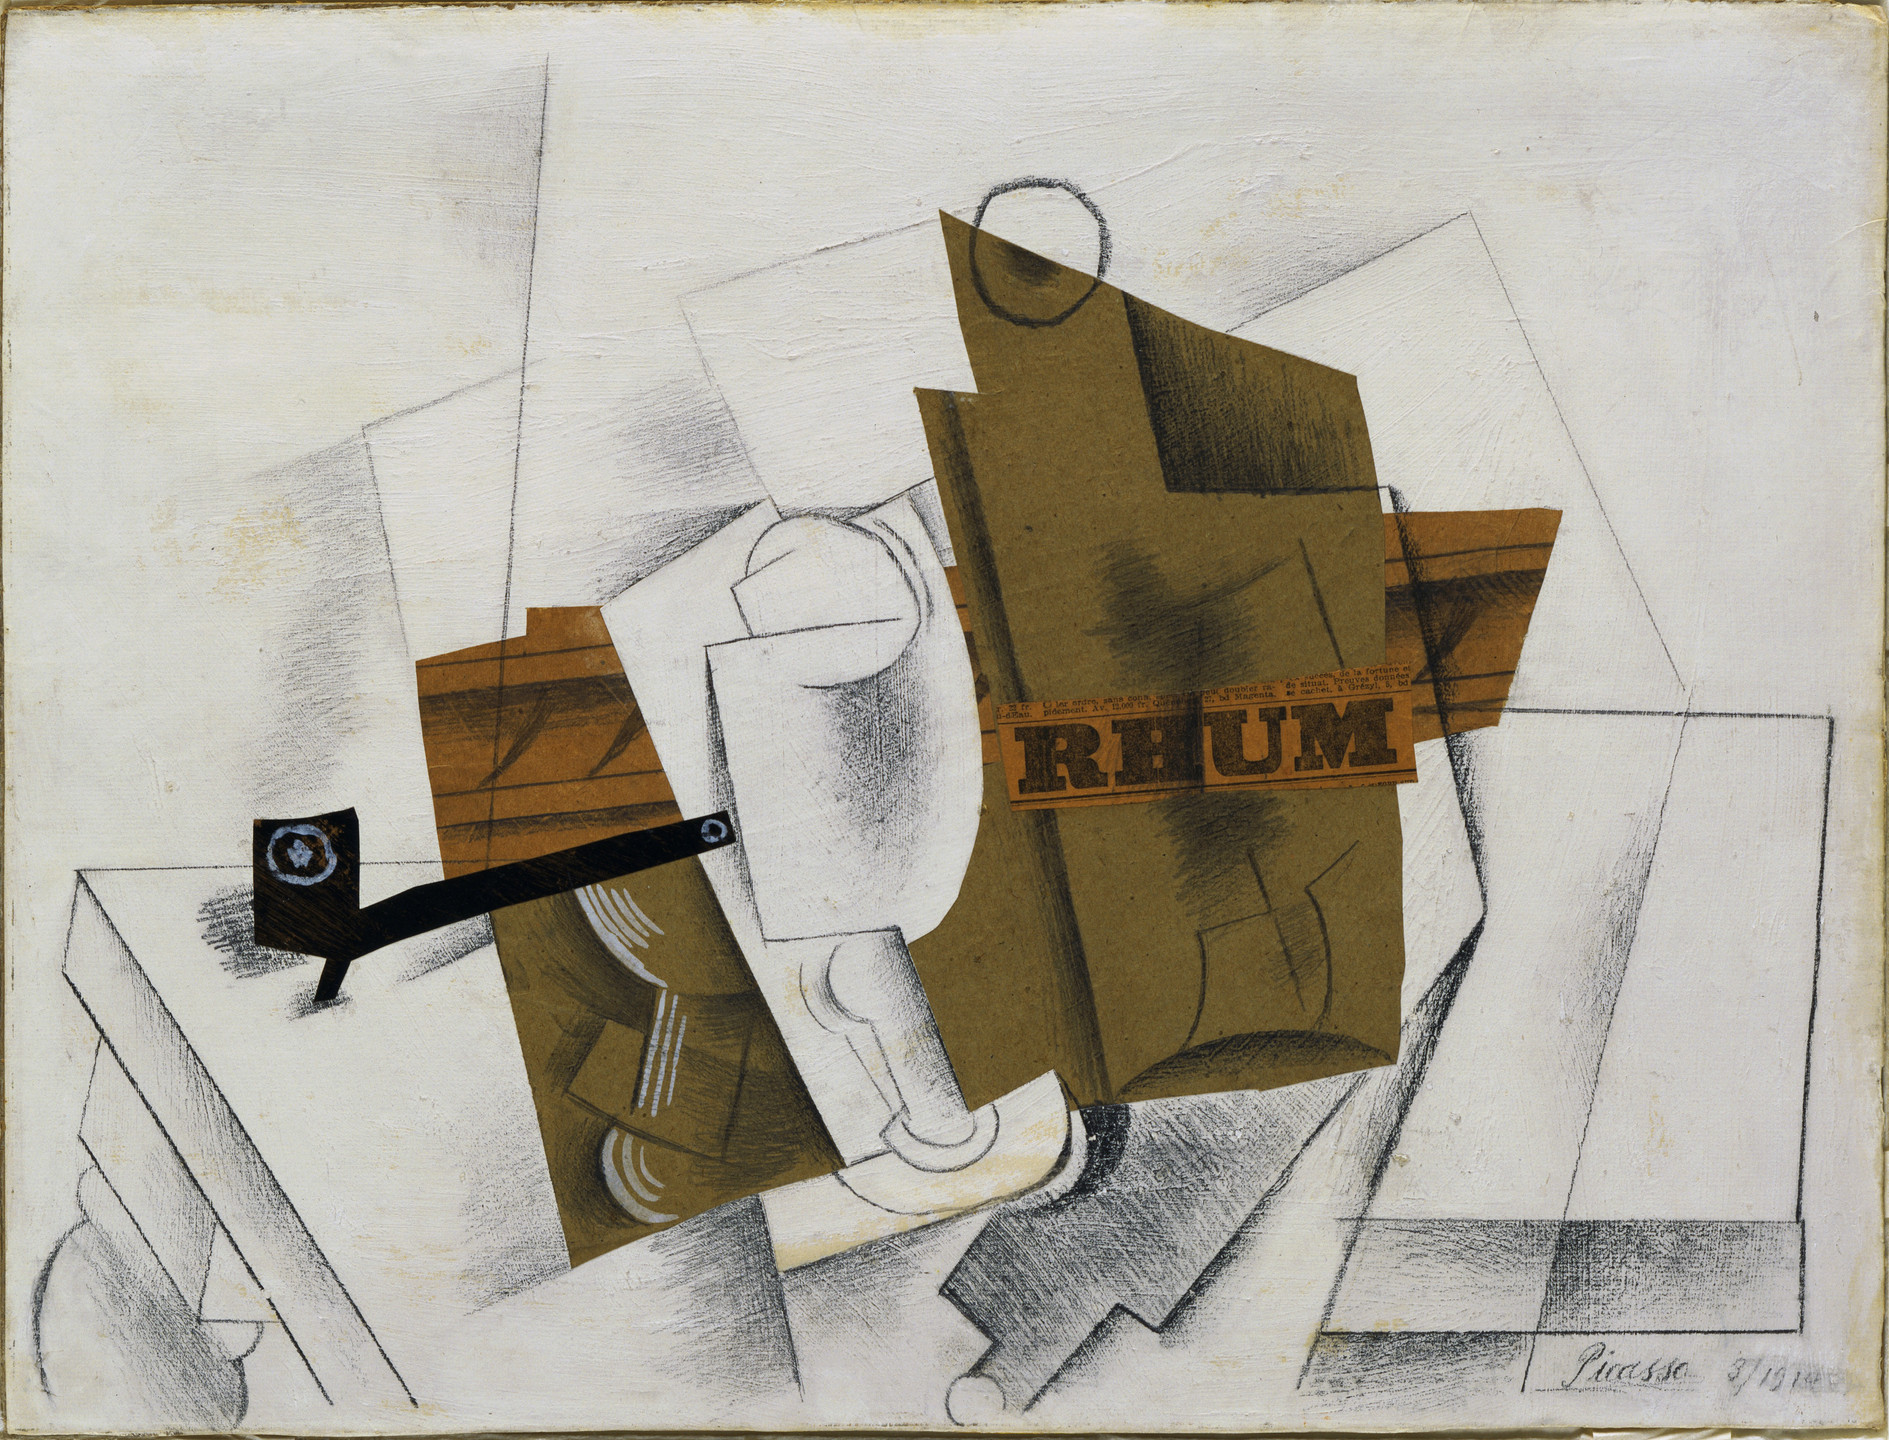 Pablo Picasso. Pipe, Glass, Bottle of Rum. 1914